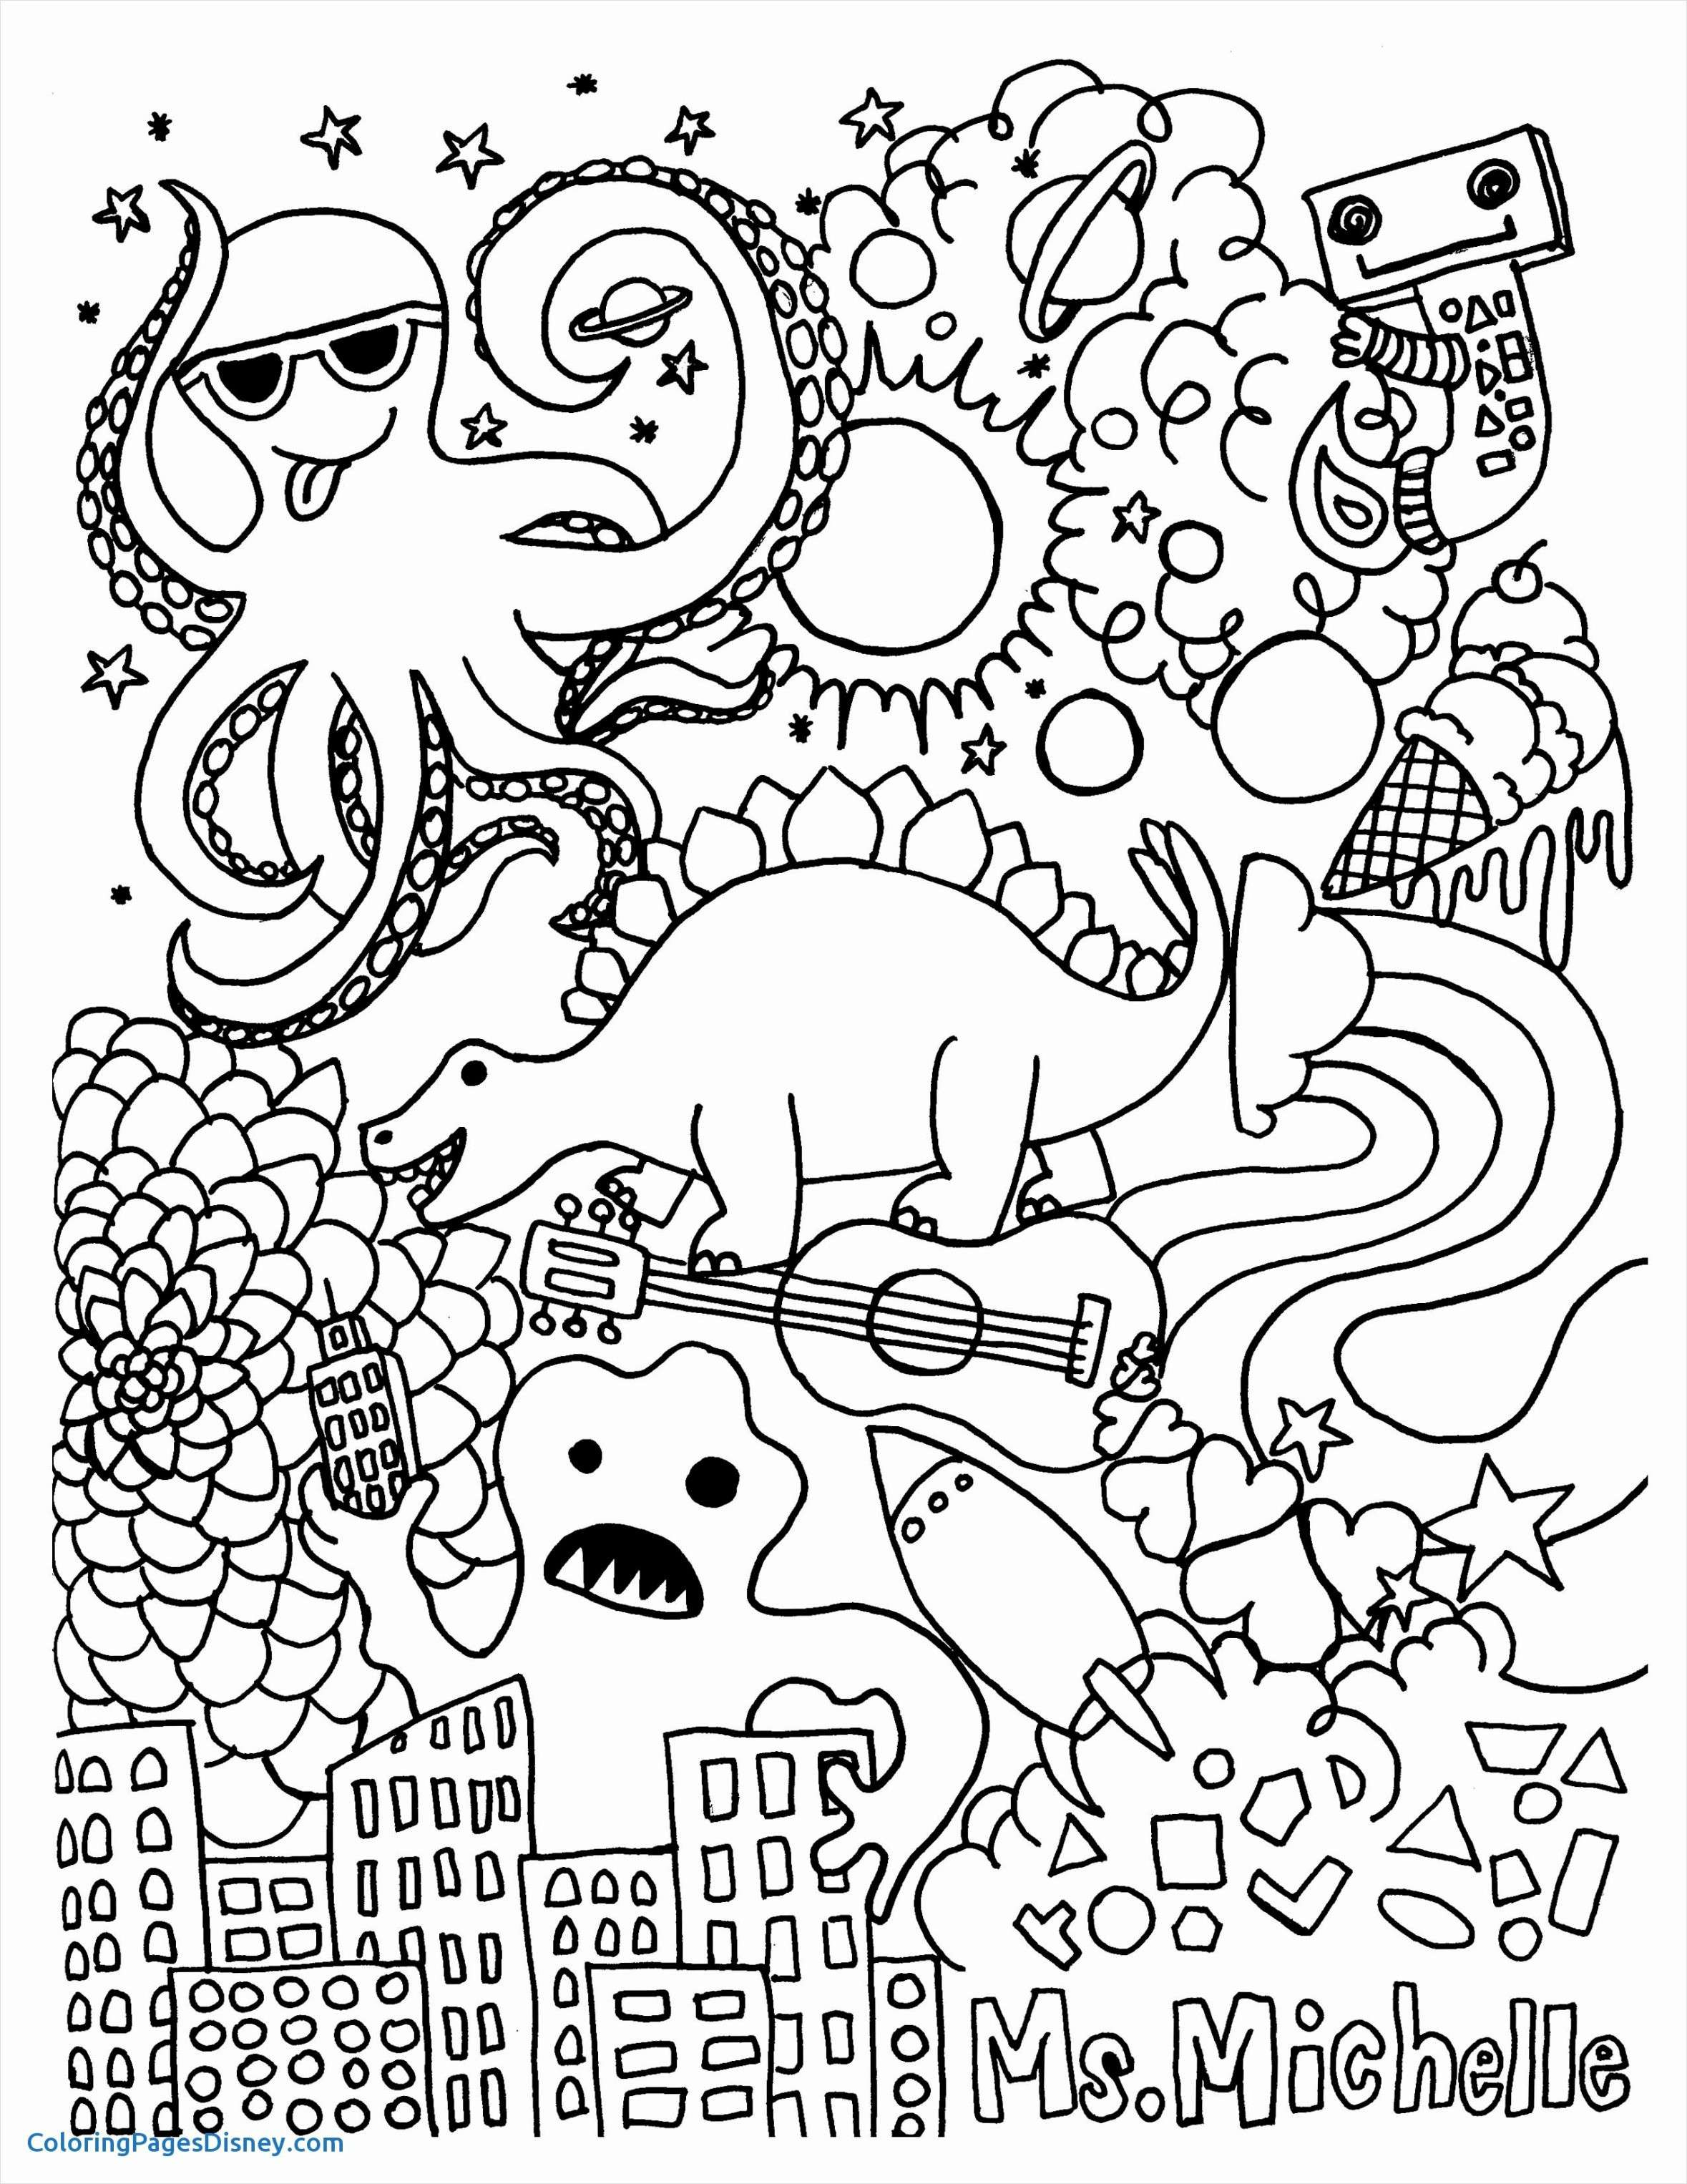 Poster Size Coloring Pages  to Print 9t - Save it to your computer